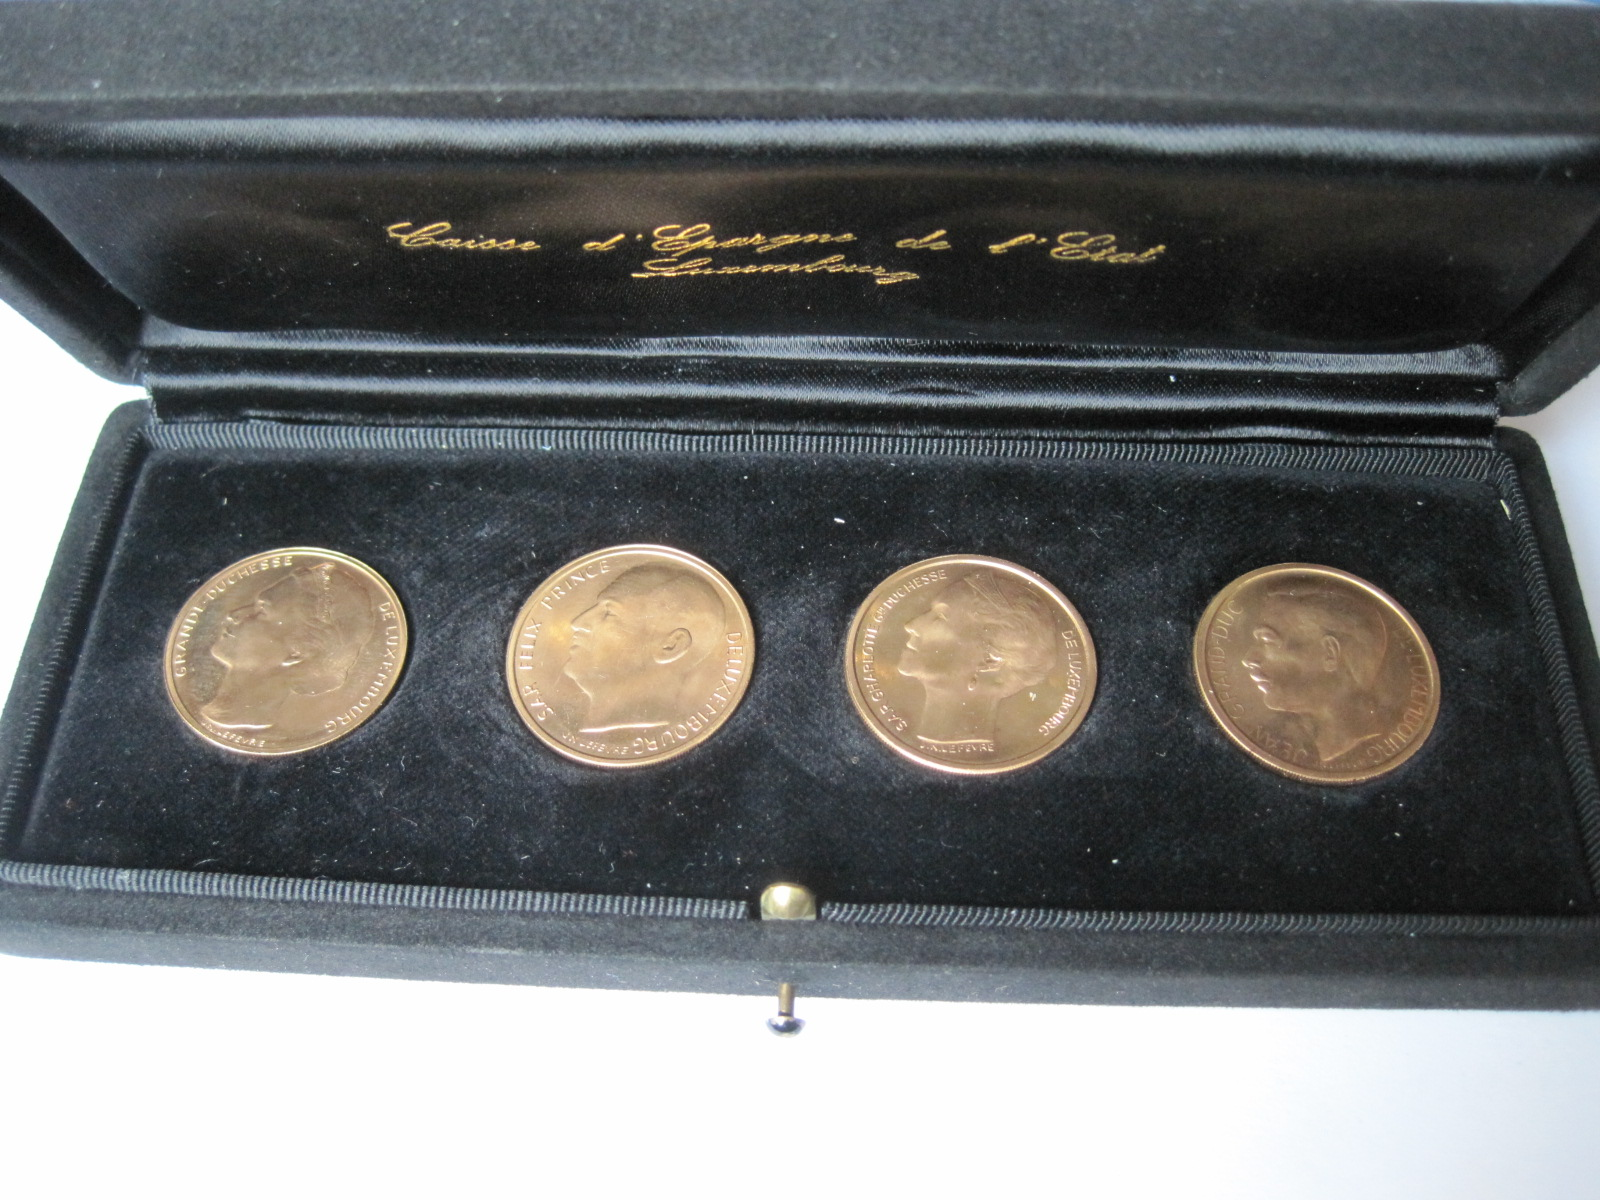 Lot 52 - Case of the Luxembourg Savings Bank containing 4 gold coins: Luxembourg Dynasty 1964 [...]